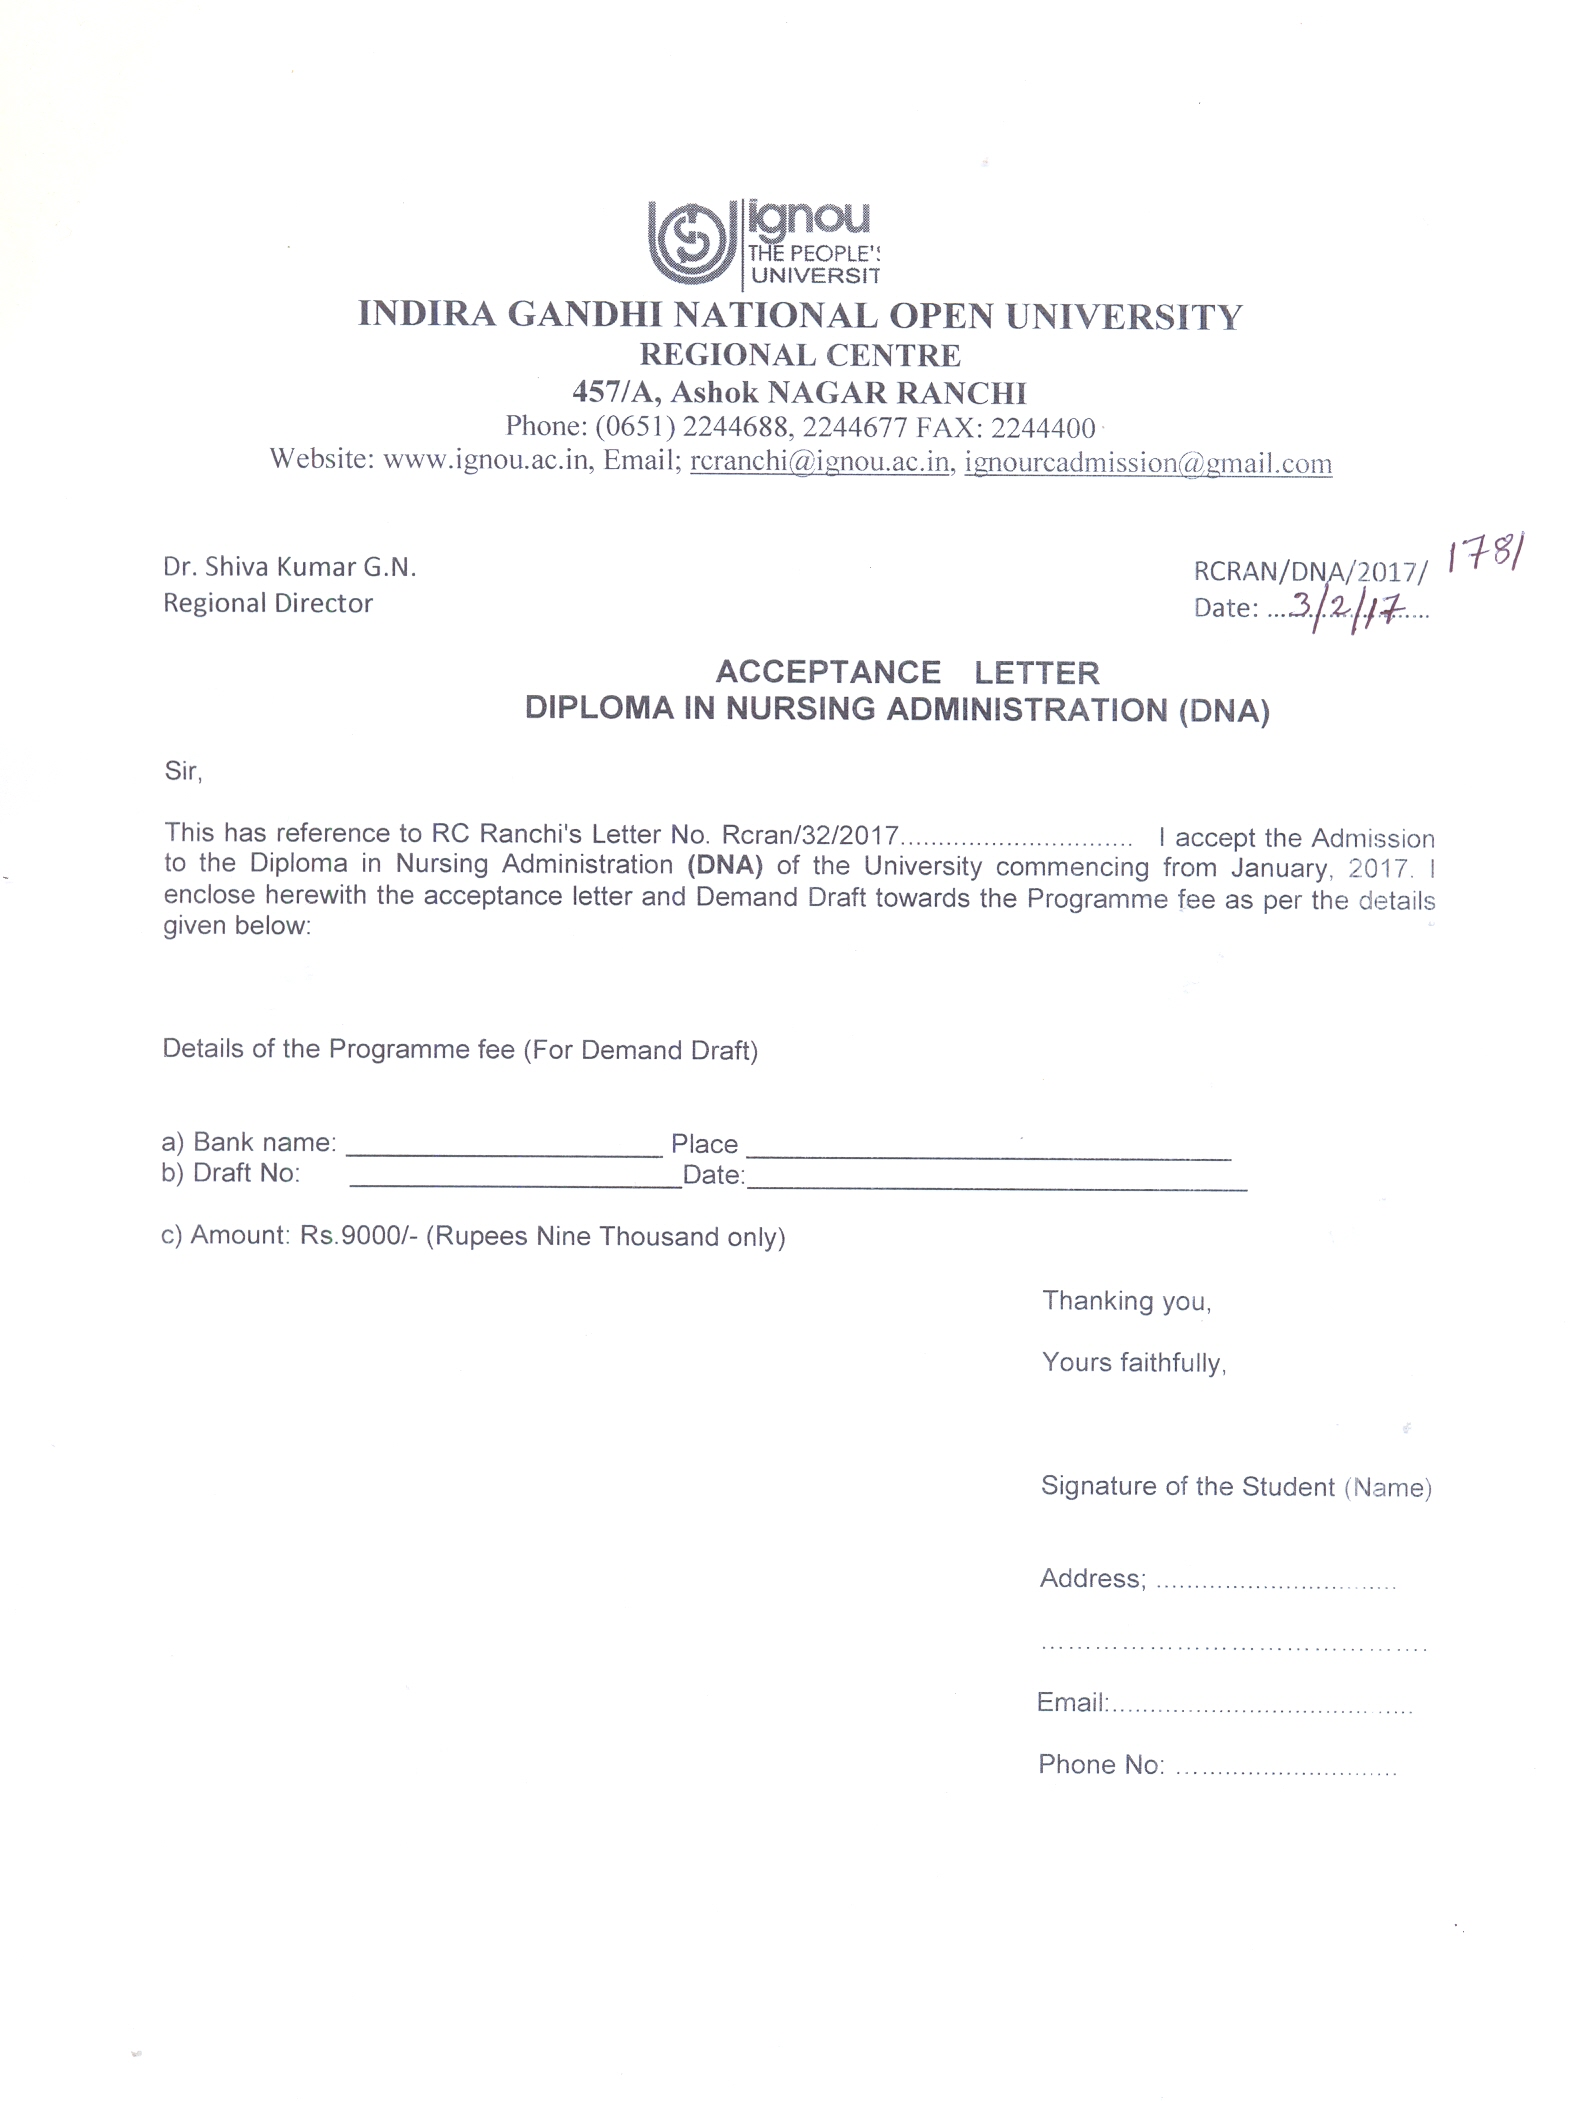 ignou rc ranchi announcements latest offer letter acceptance offer letter middot acceptance letter